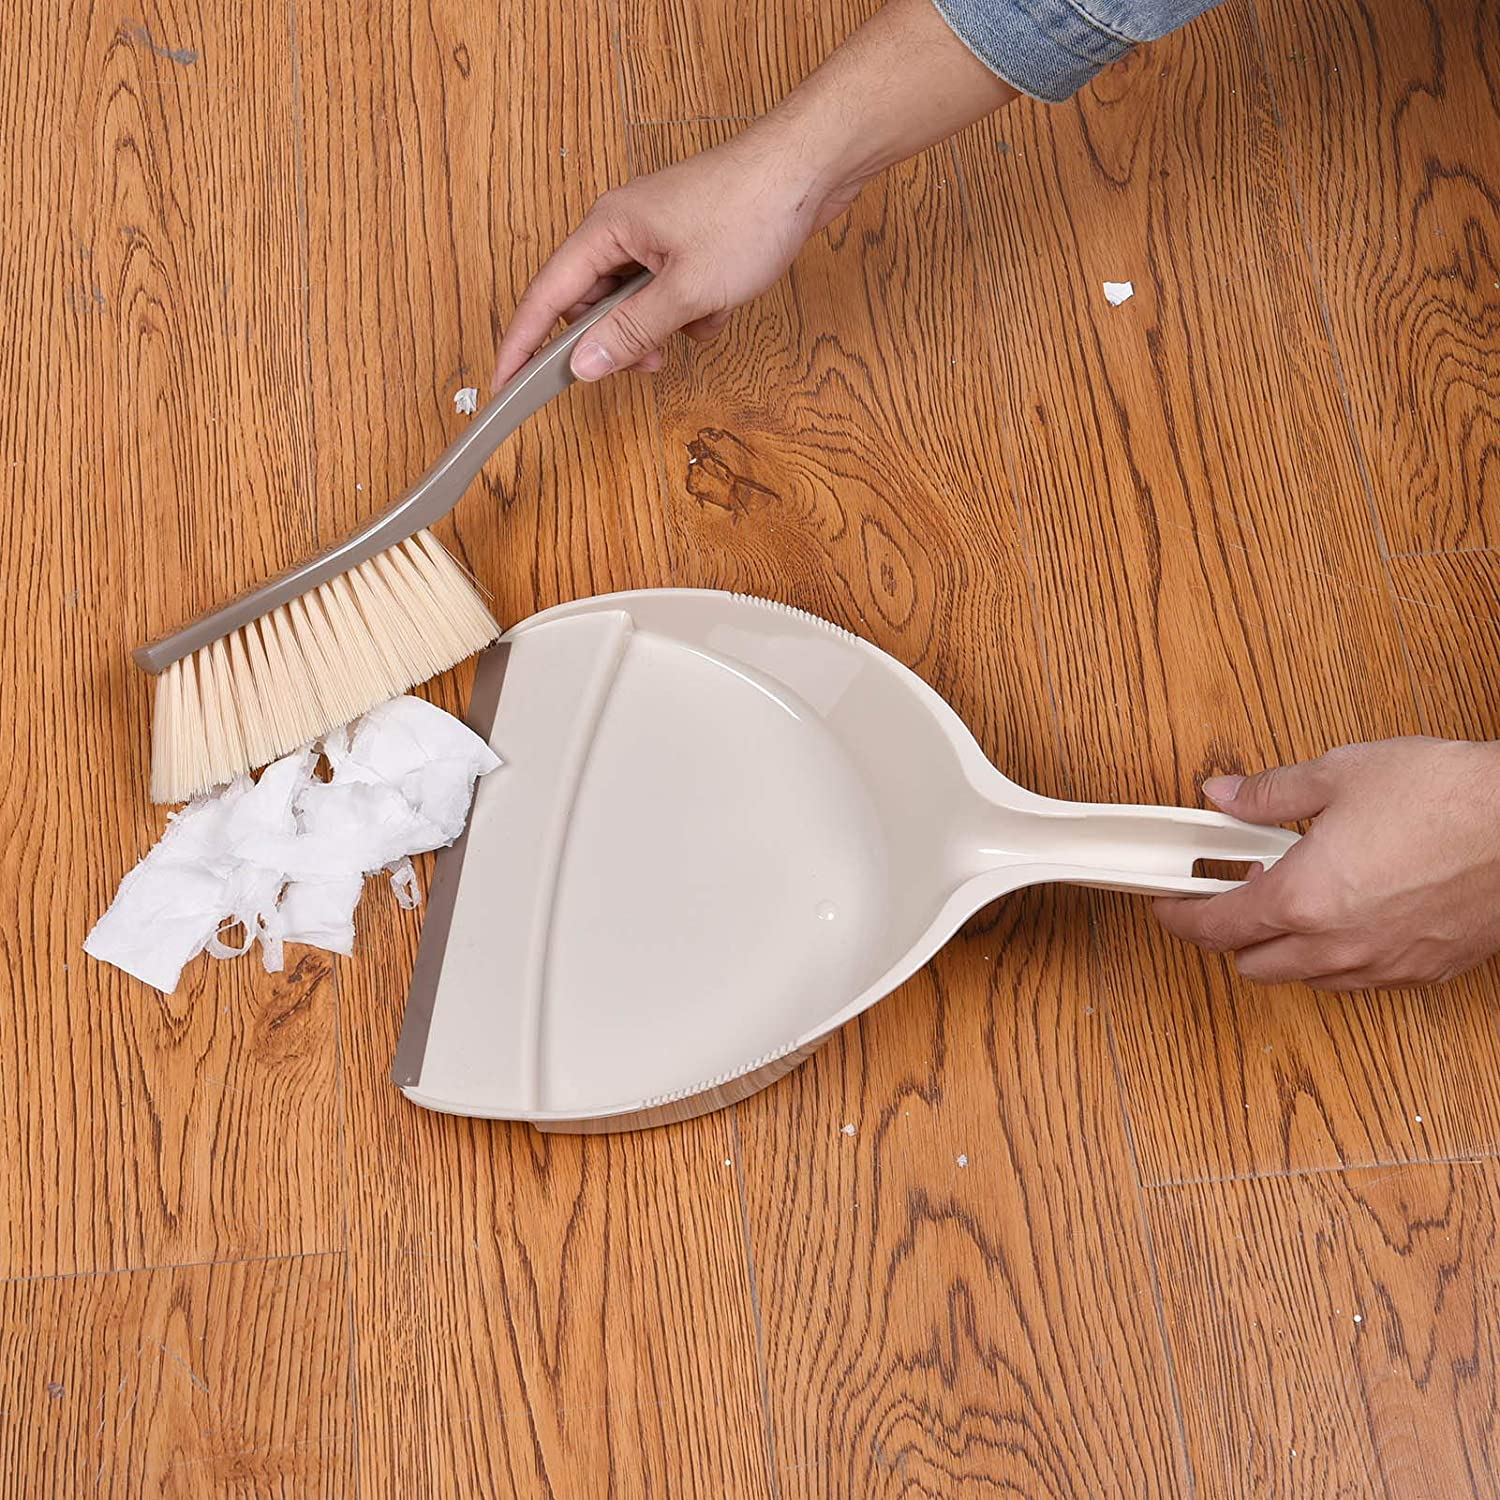 Multi-Functional Portable Snap-on Dustpan Set Mini Hand Dustpan and Brush Sofa Cleaning Tool for Floor Car 2-Pack Pink and Beige Desk